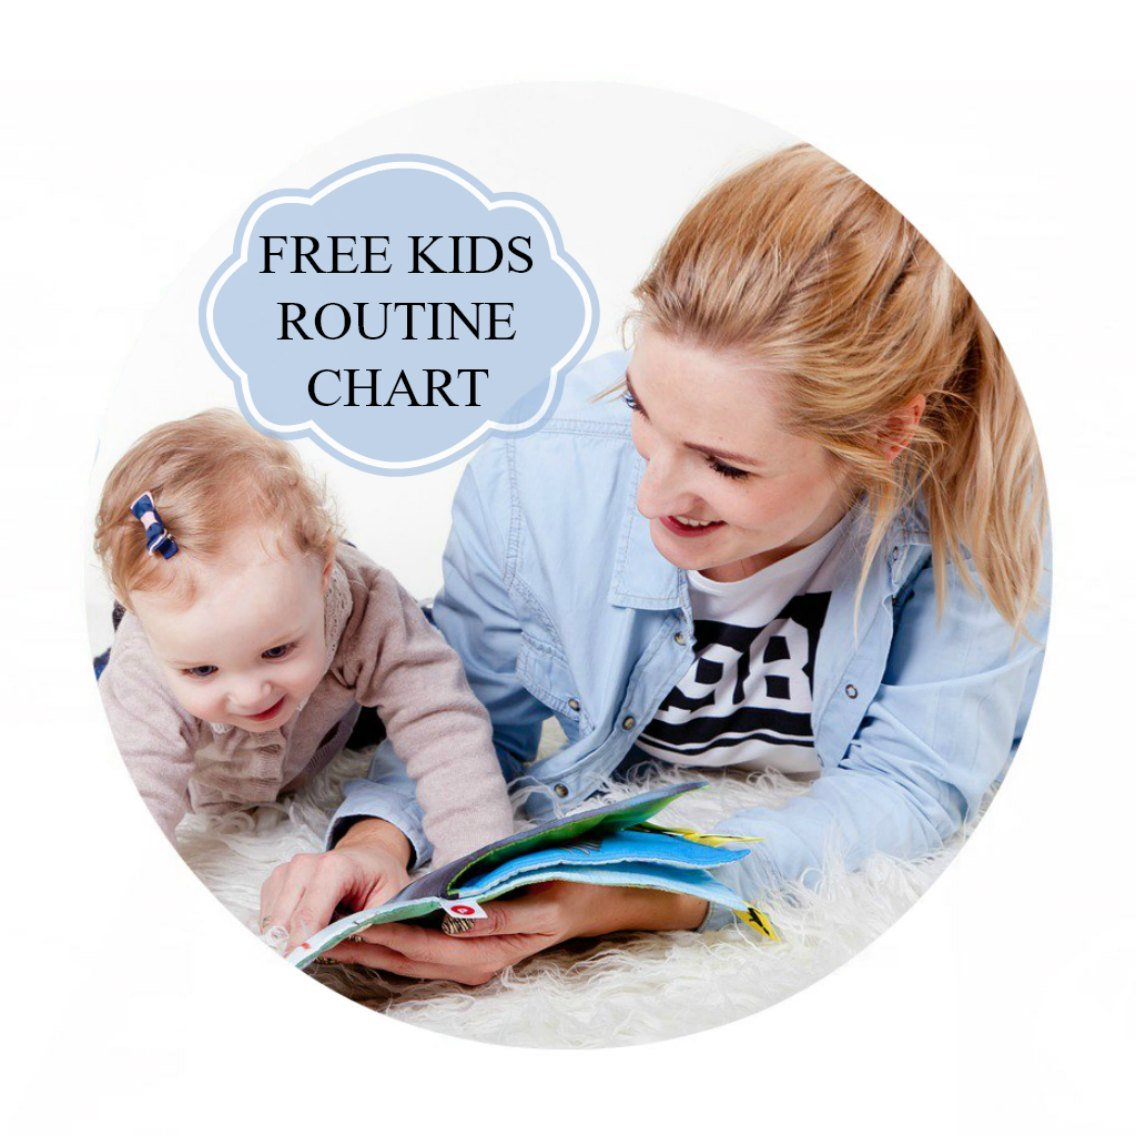 Free kids routine chart for mums